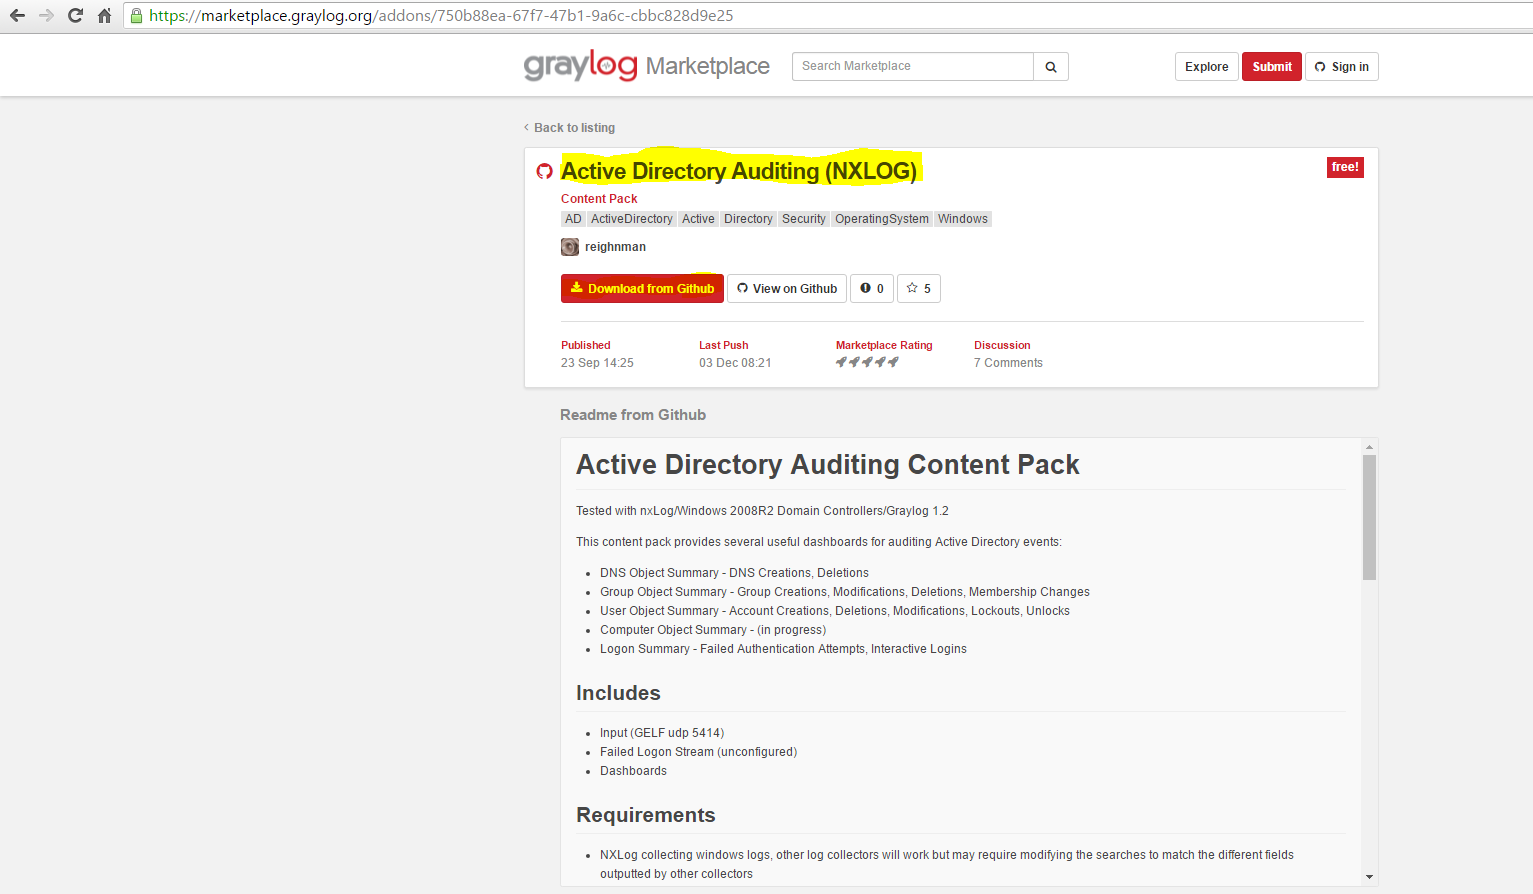 Installation 65 contenu pack active directory nxlog market place graylog